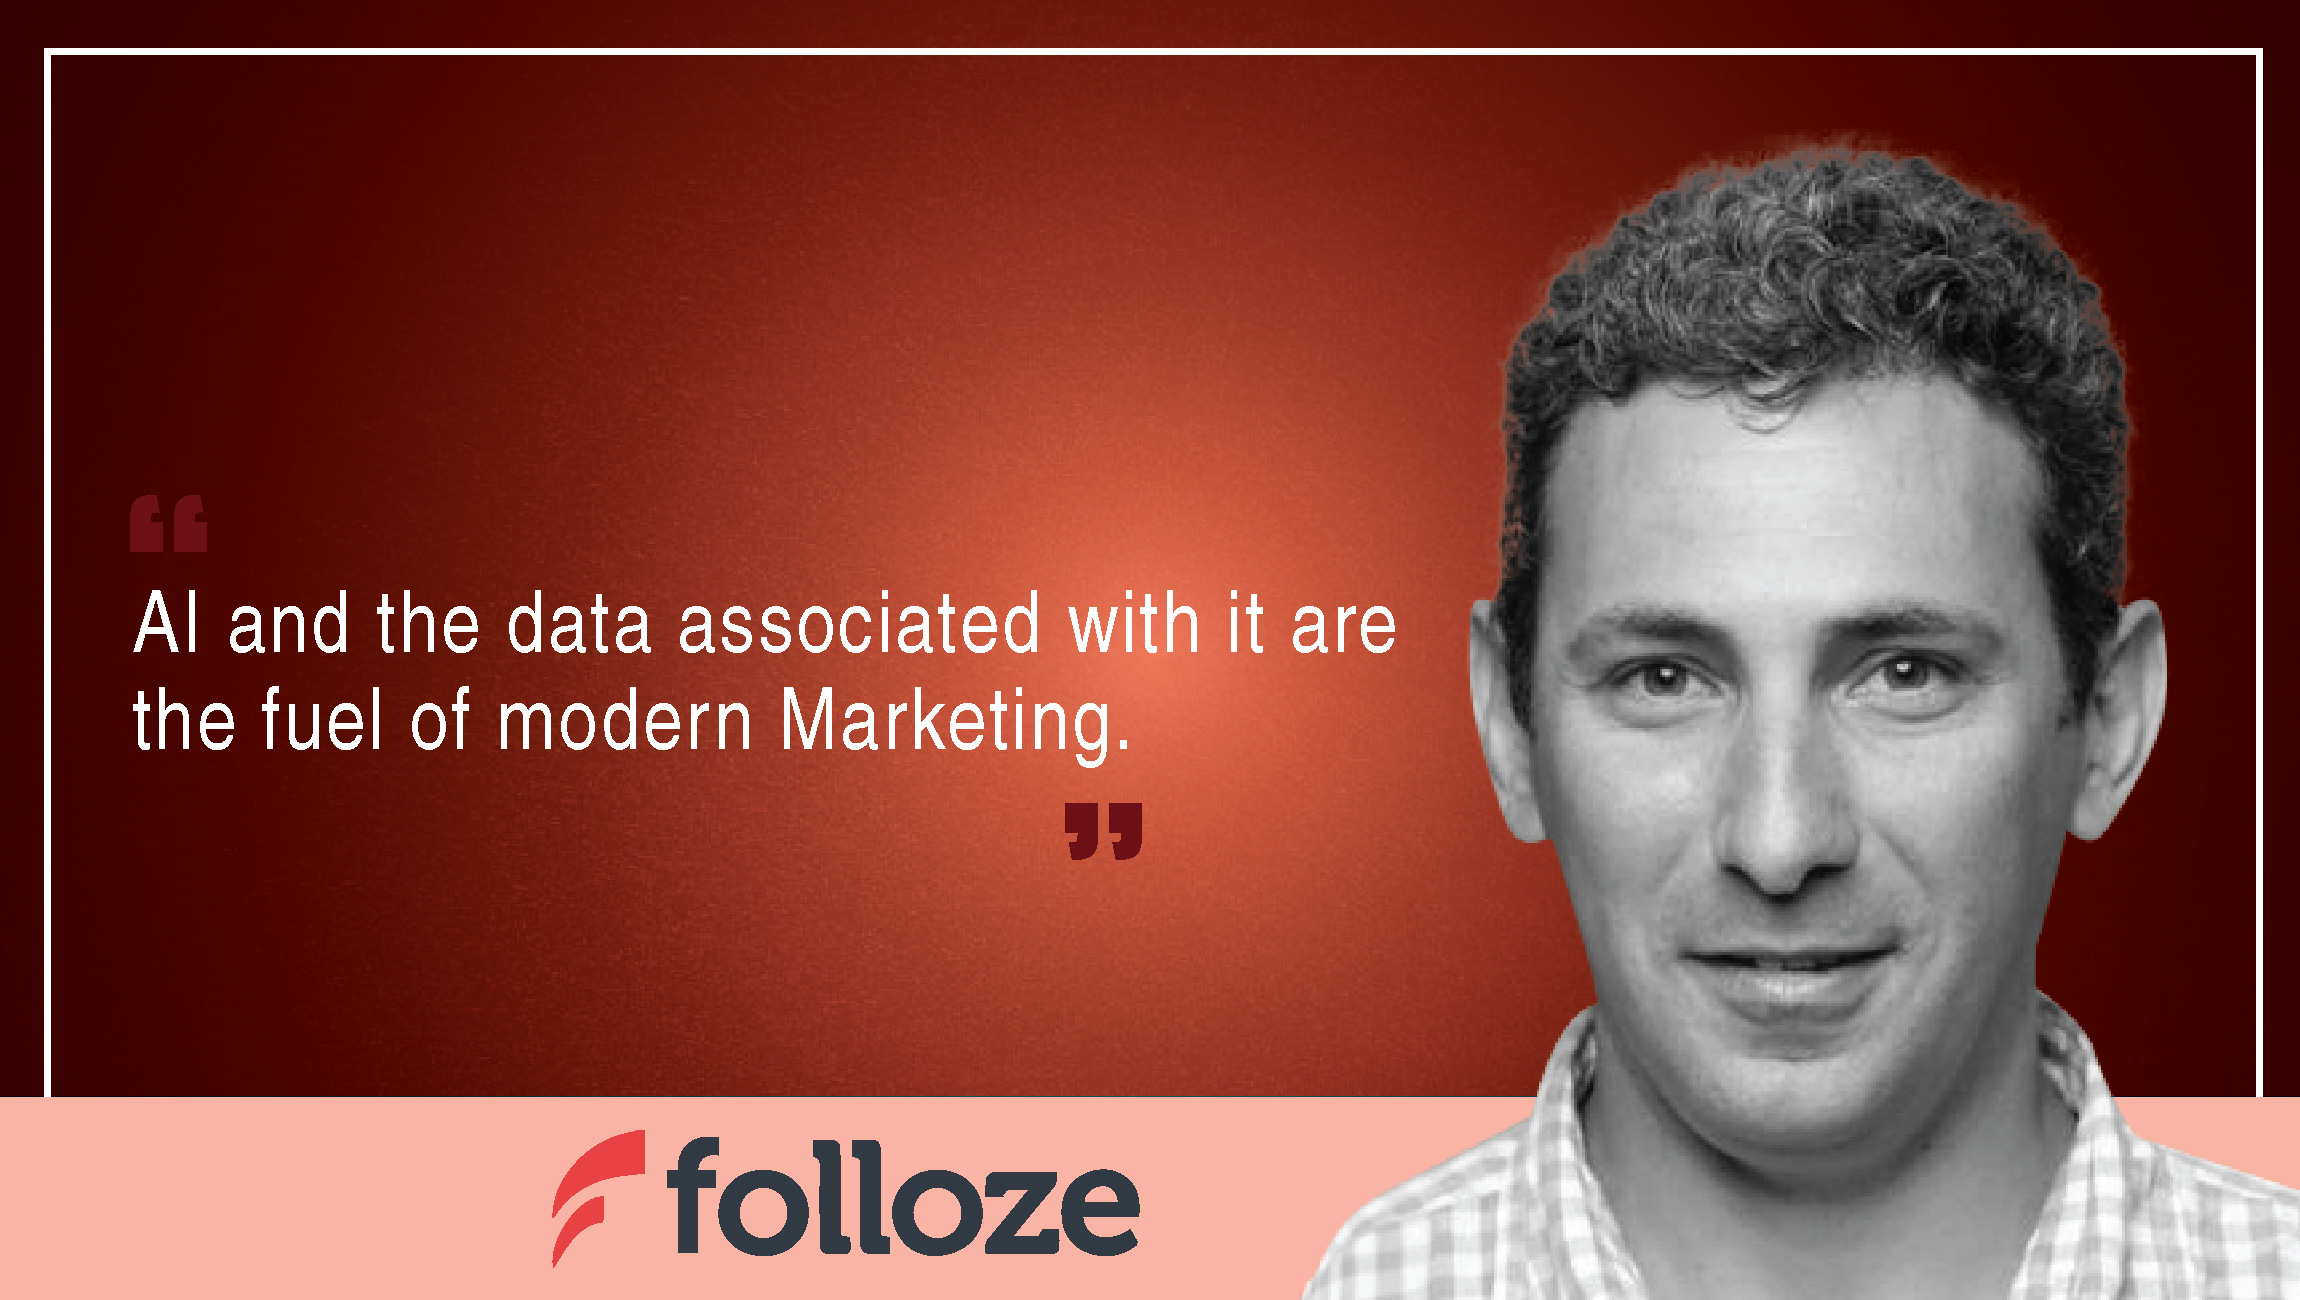 David Brutman, Co-Founder and Chief Product Officer at Folloze